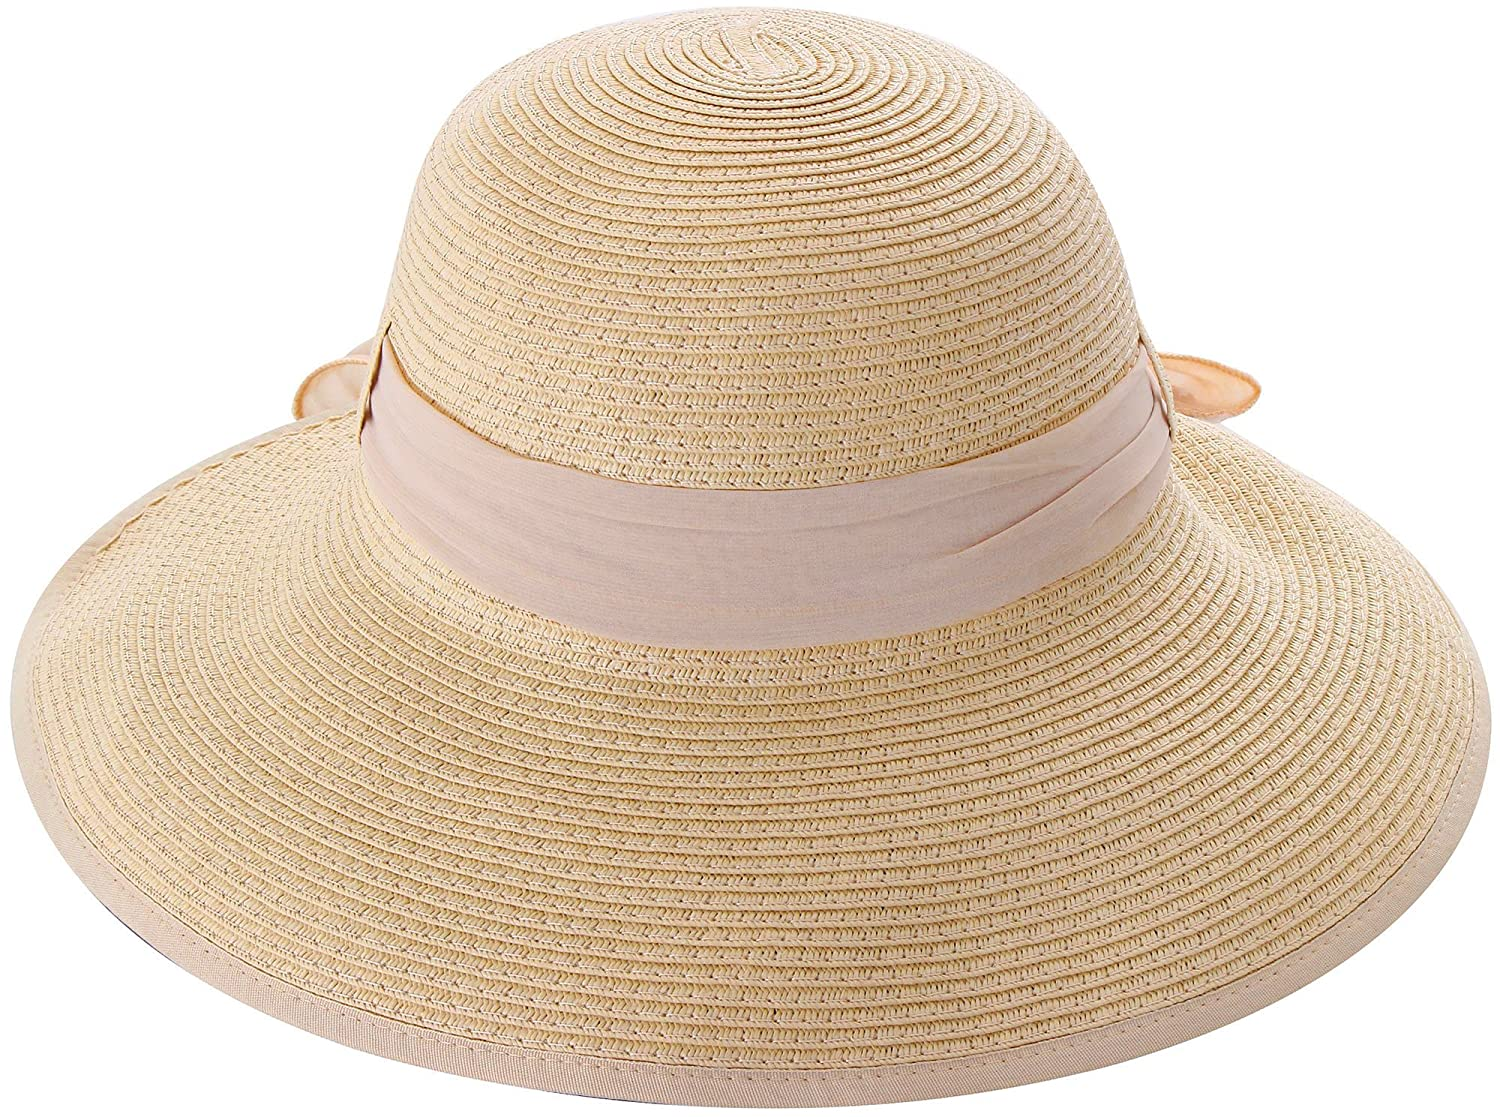 3bb54b14d67 Simplicity Women s Wide Brim Summer Beach Straw Hats 2049 Natural w Pink  Ribbon at Amazon Women s Clothing store  Straw Bonnet